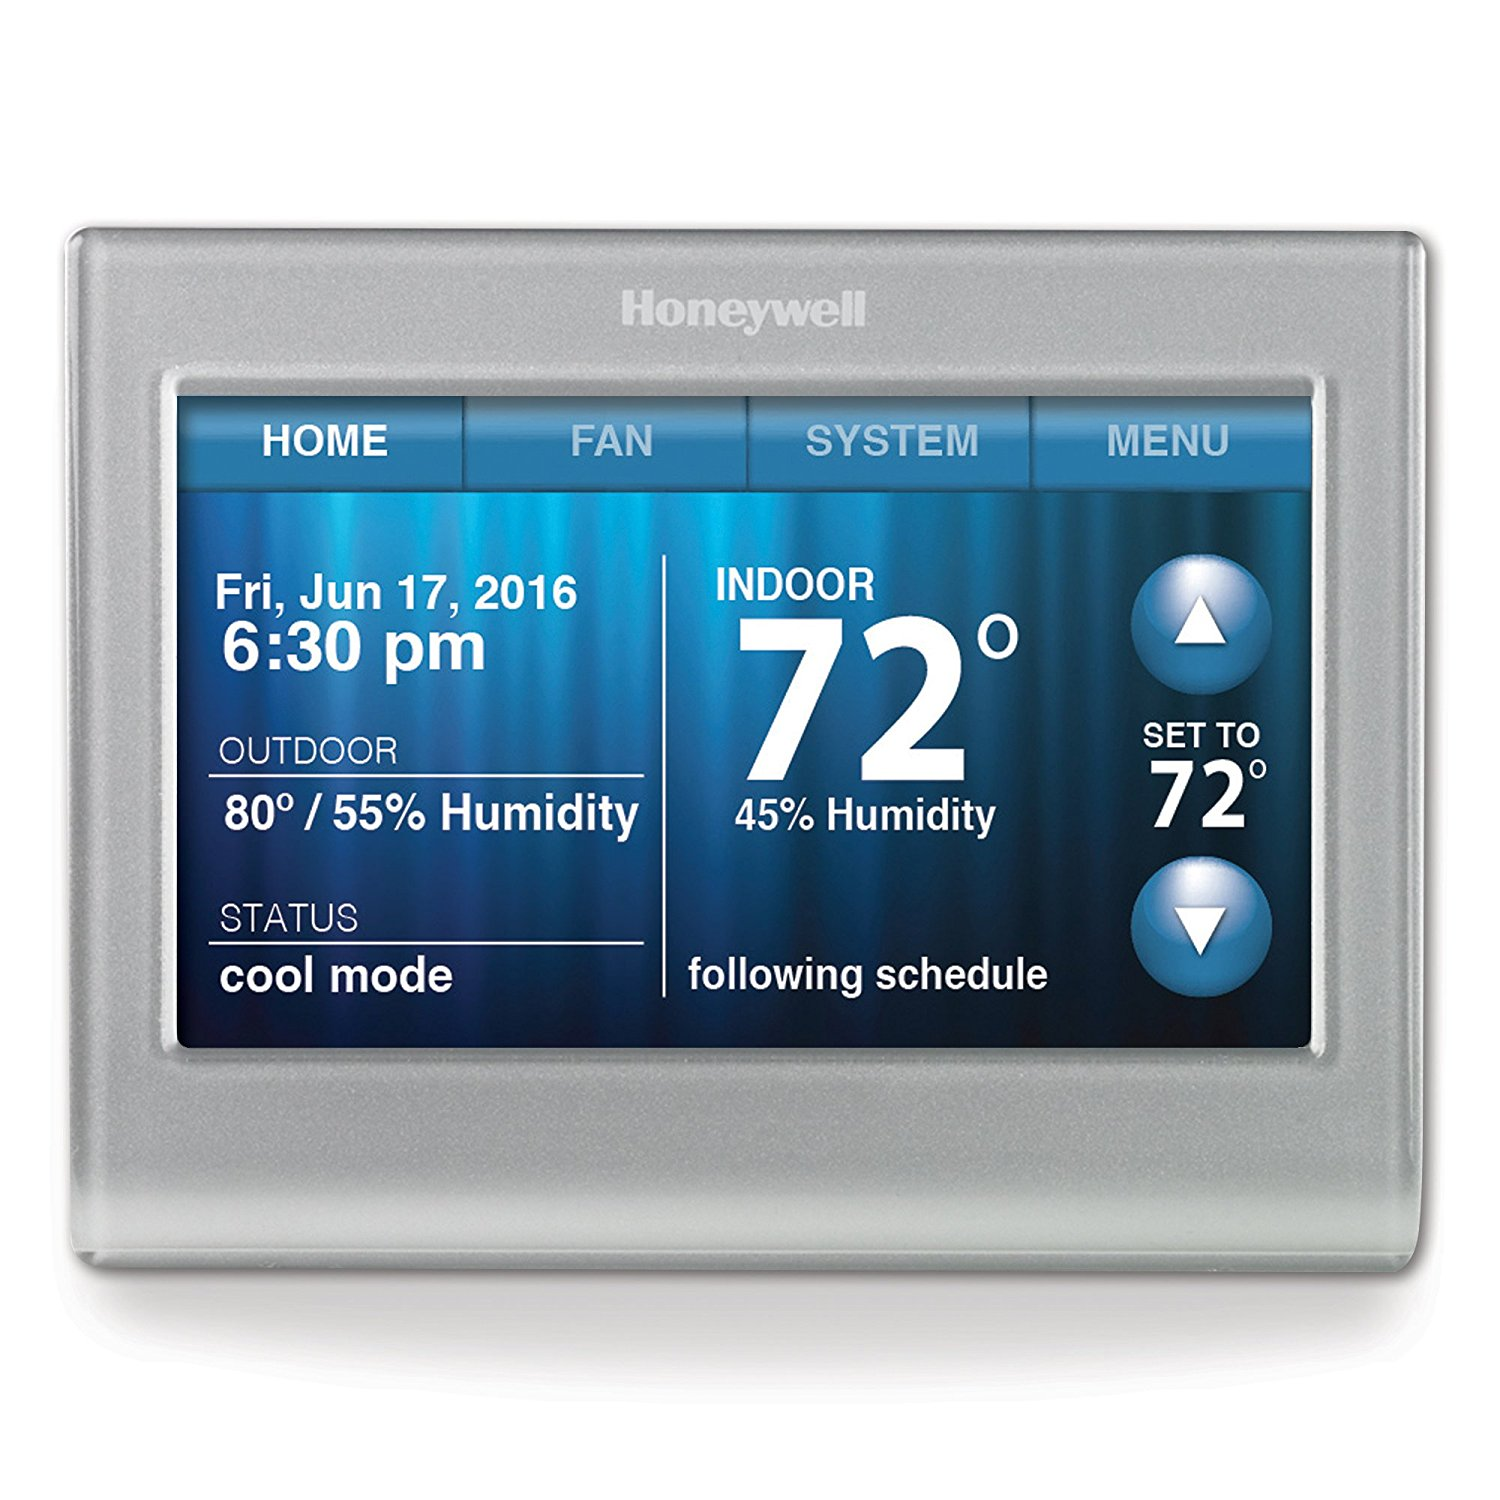 Honeywell Smart Touch Screen Thermostat